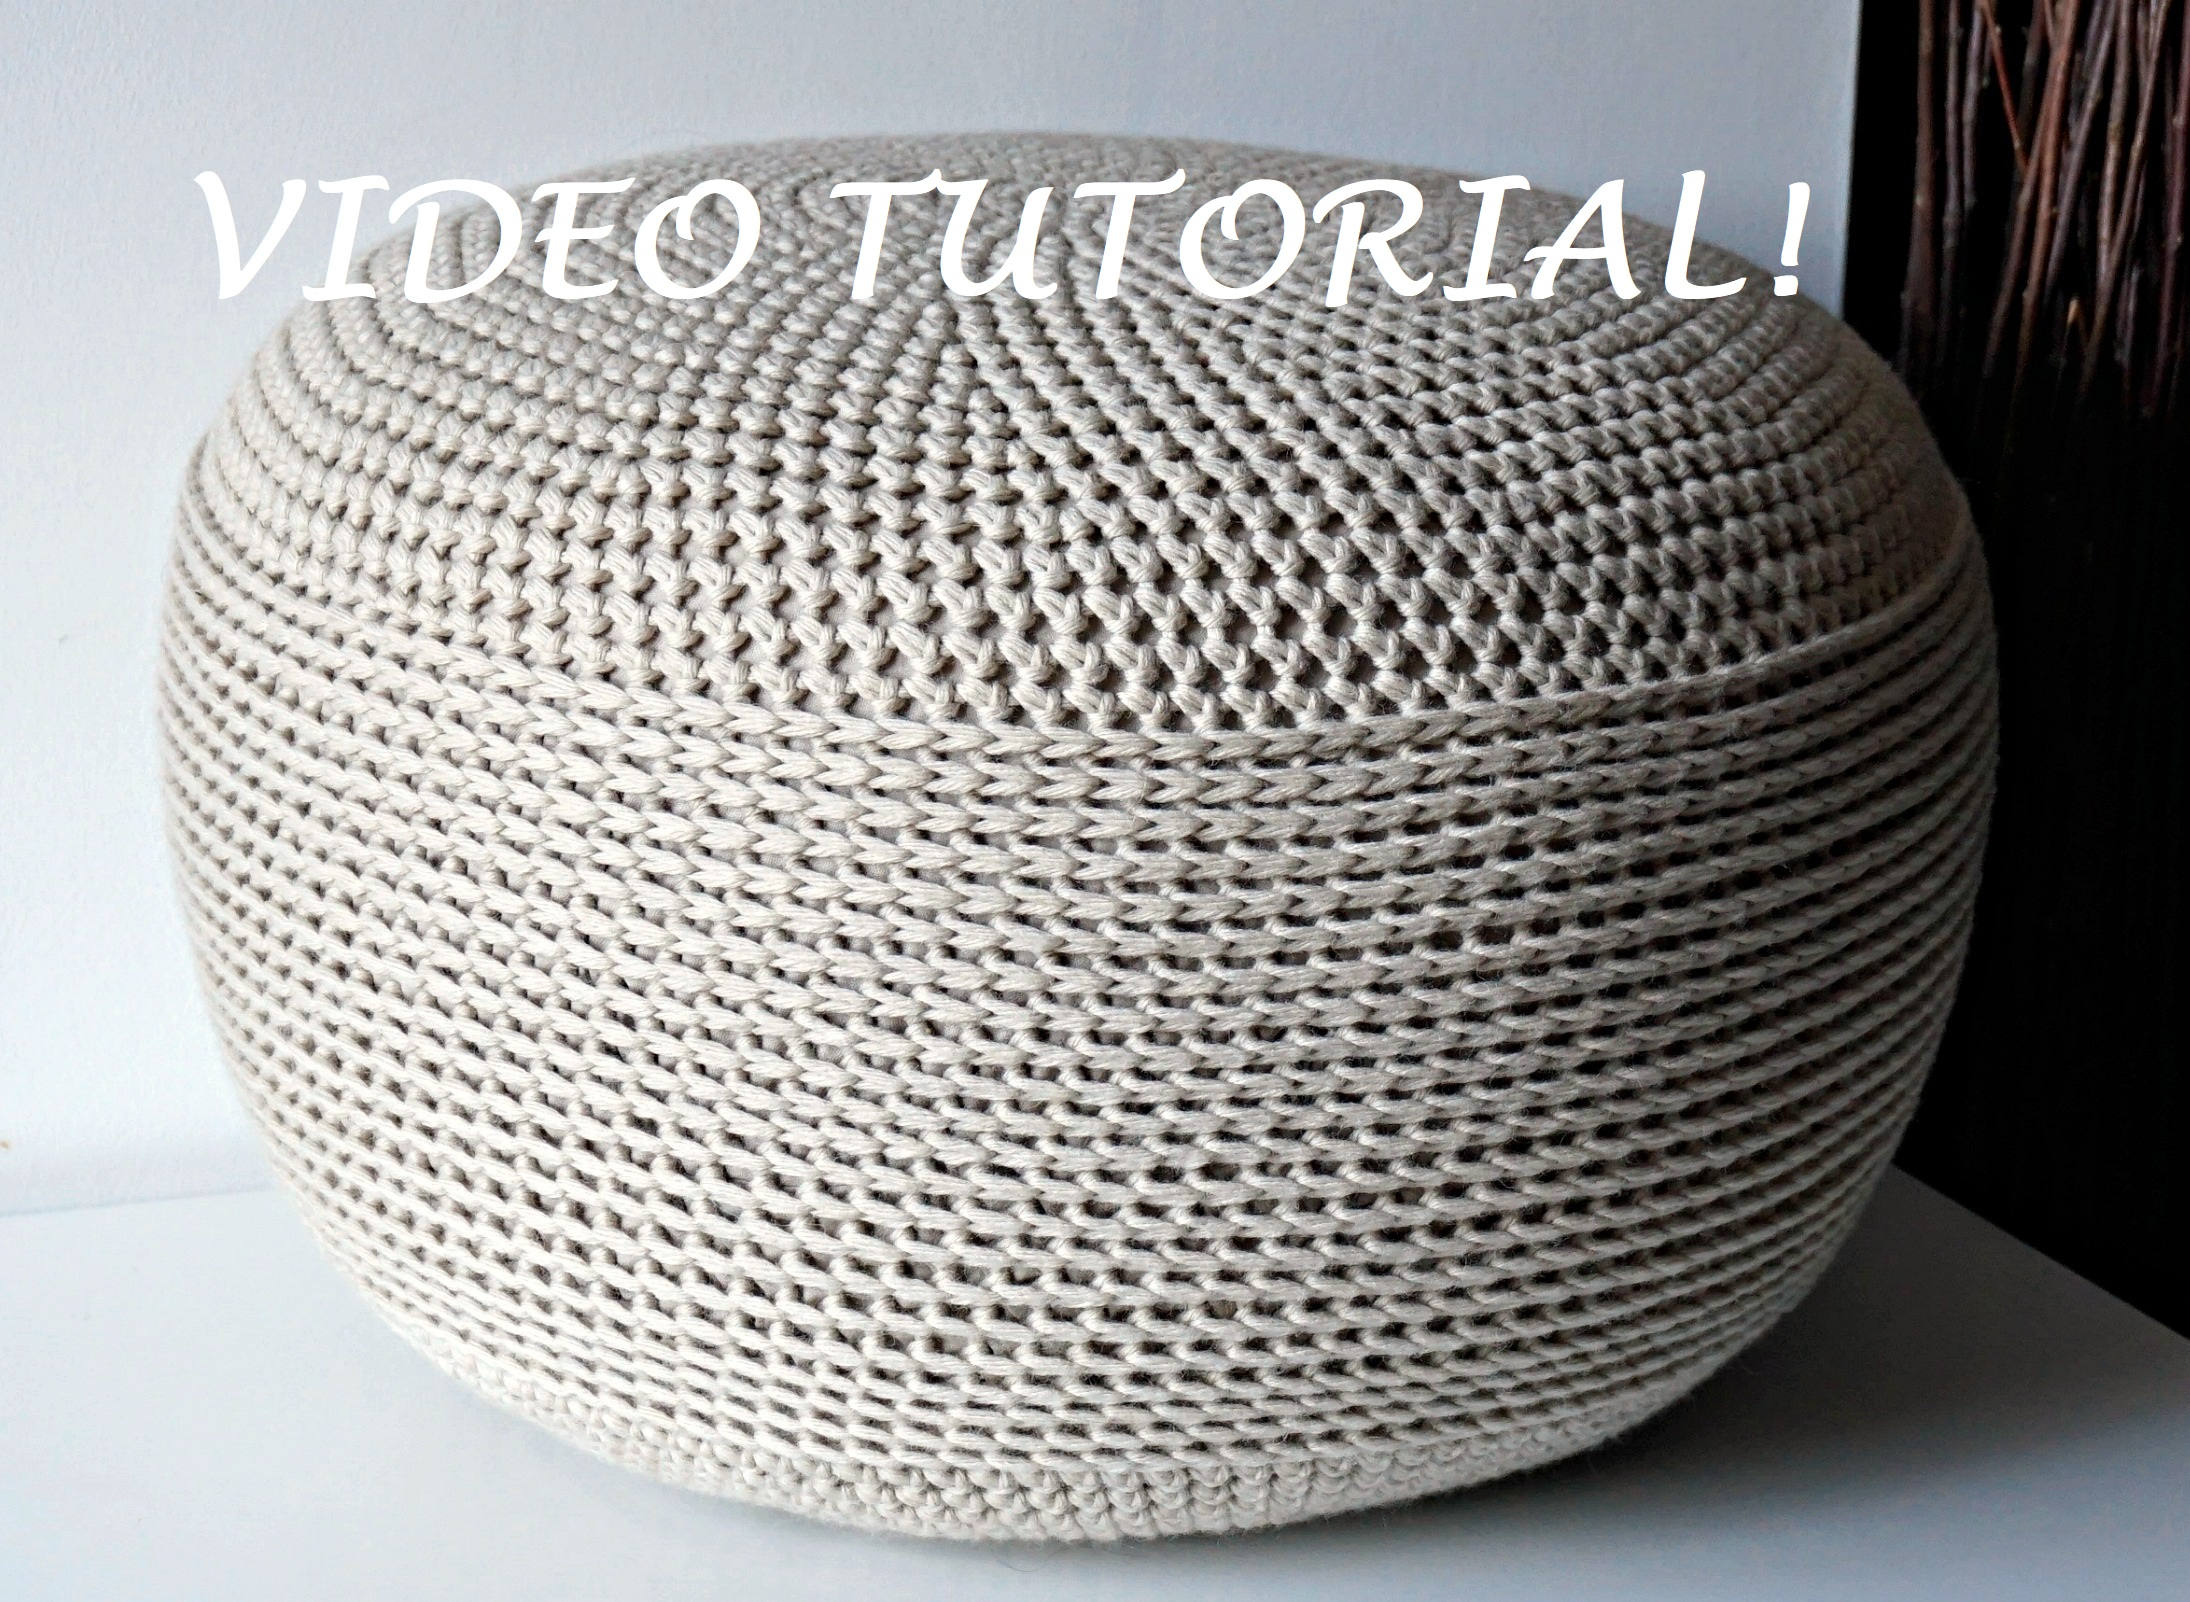 CROCHET PATTERN Diy Tutorial Crochet Pouf Poof Ottoman | Etsy